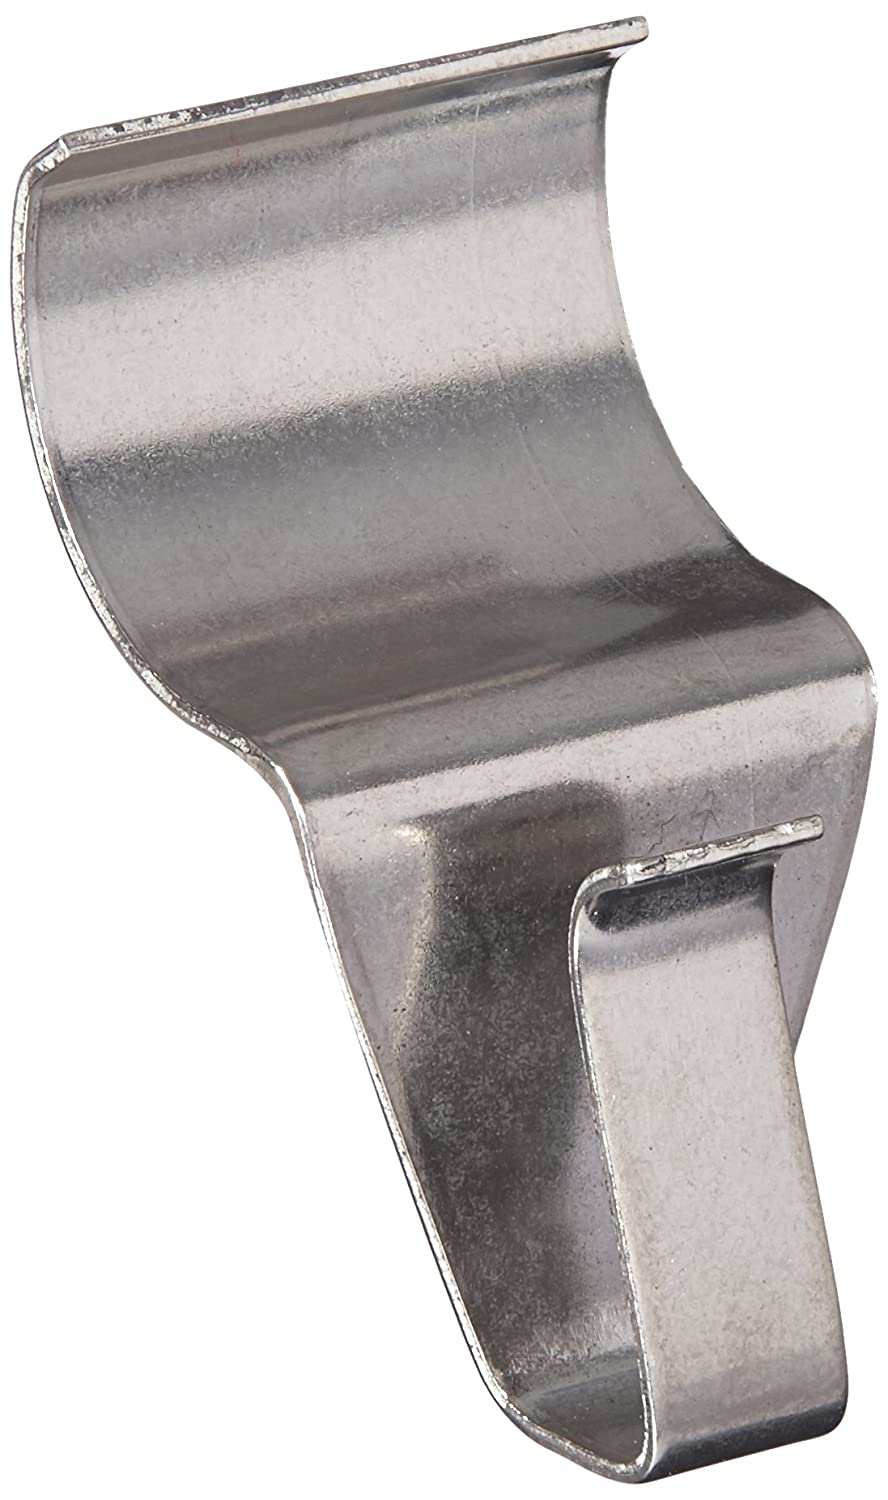 CWI Gifts Low Profile No Hole Hook, 1.5-Inch, 2-Pack M00102A